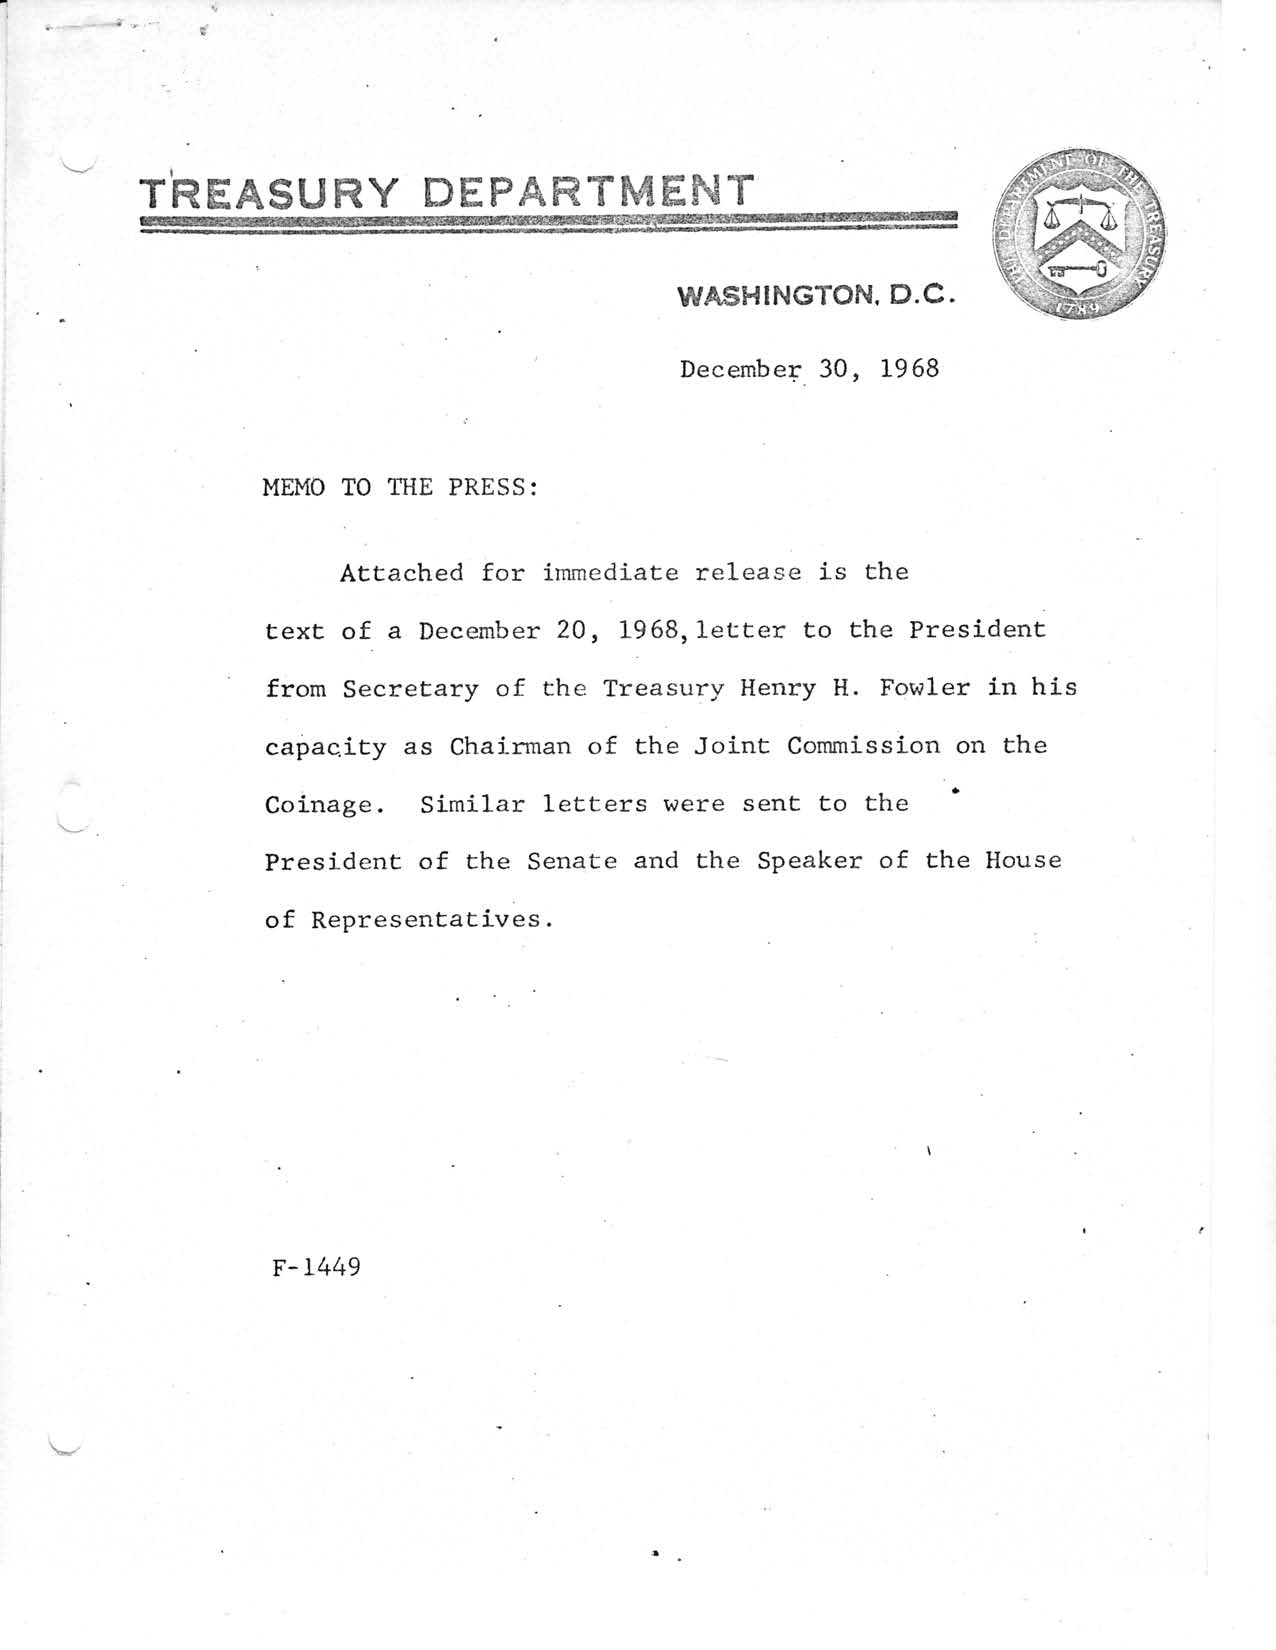 Historic Press Release: Letter to President From Treasury Secretary, Page 1